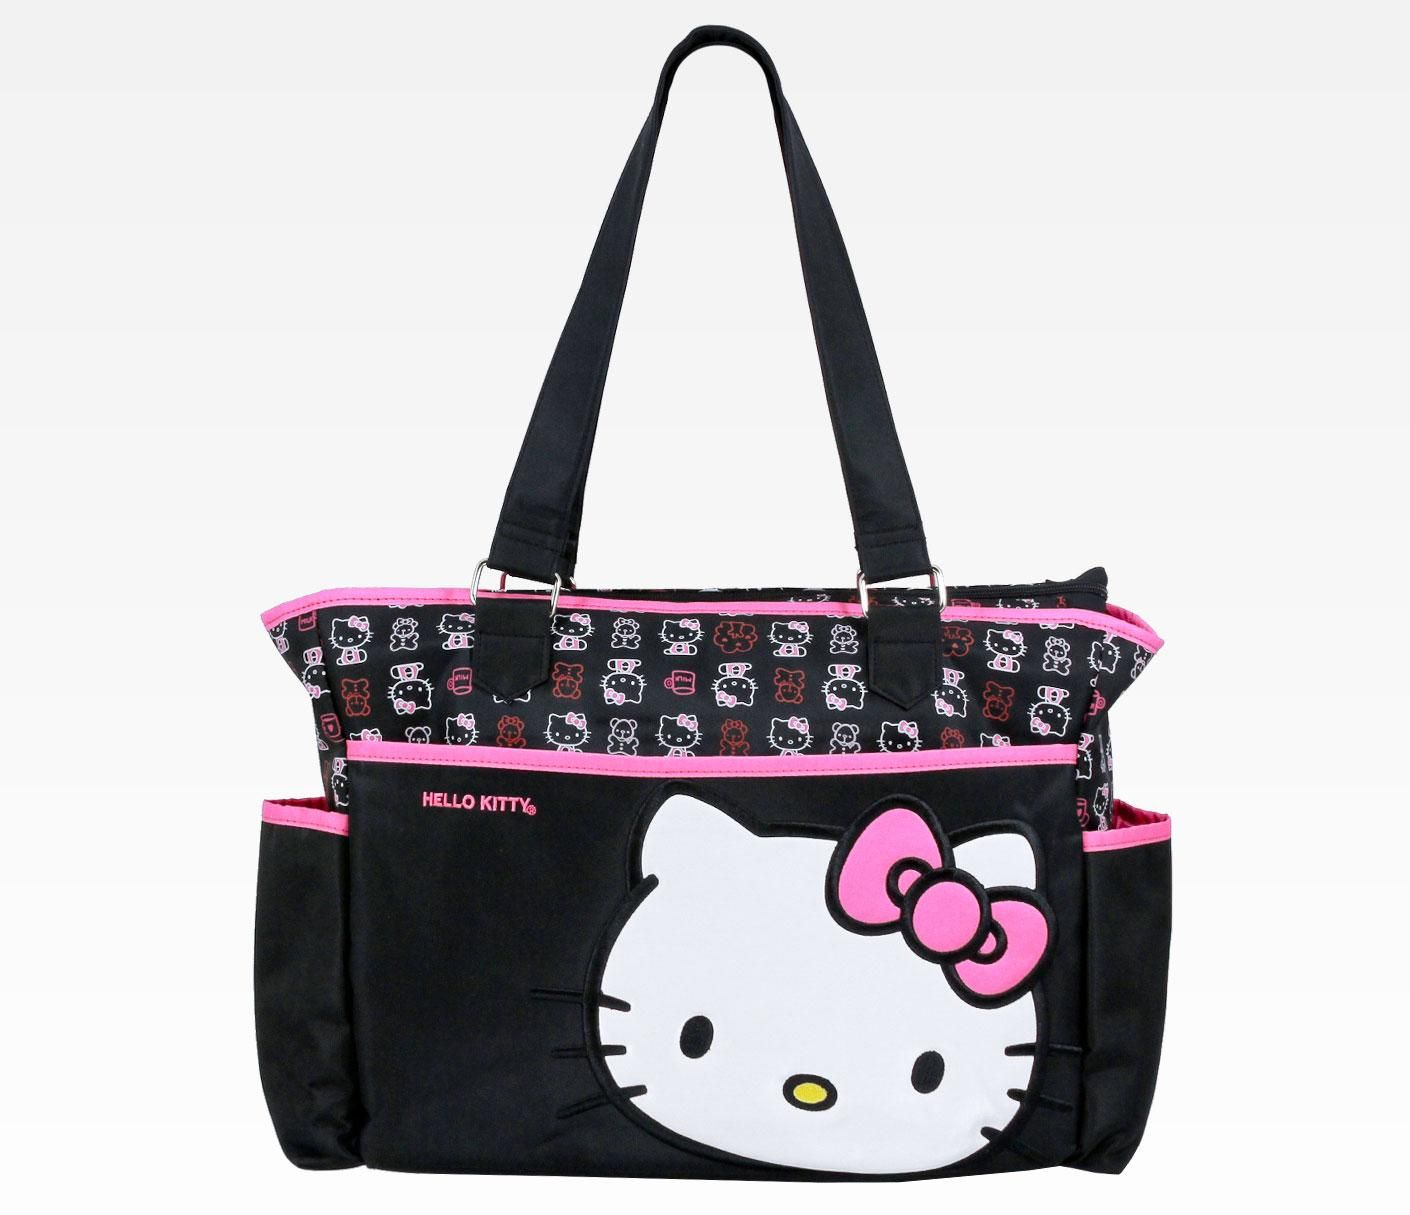 hello kitty black diaper bag face while i have no need for a diaper bag i would absolutely. Black Bedroom Furniture Sets. Home Design Ideas